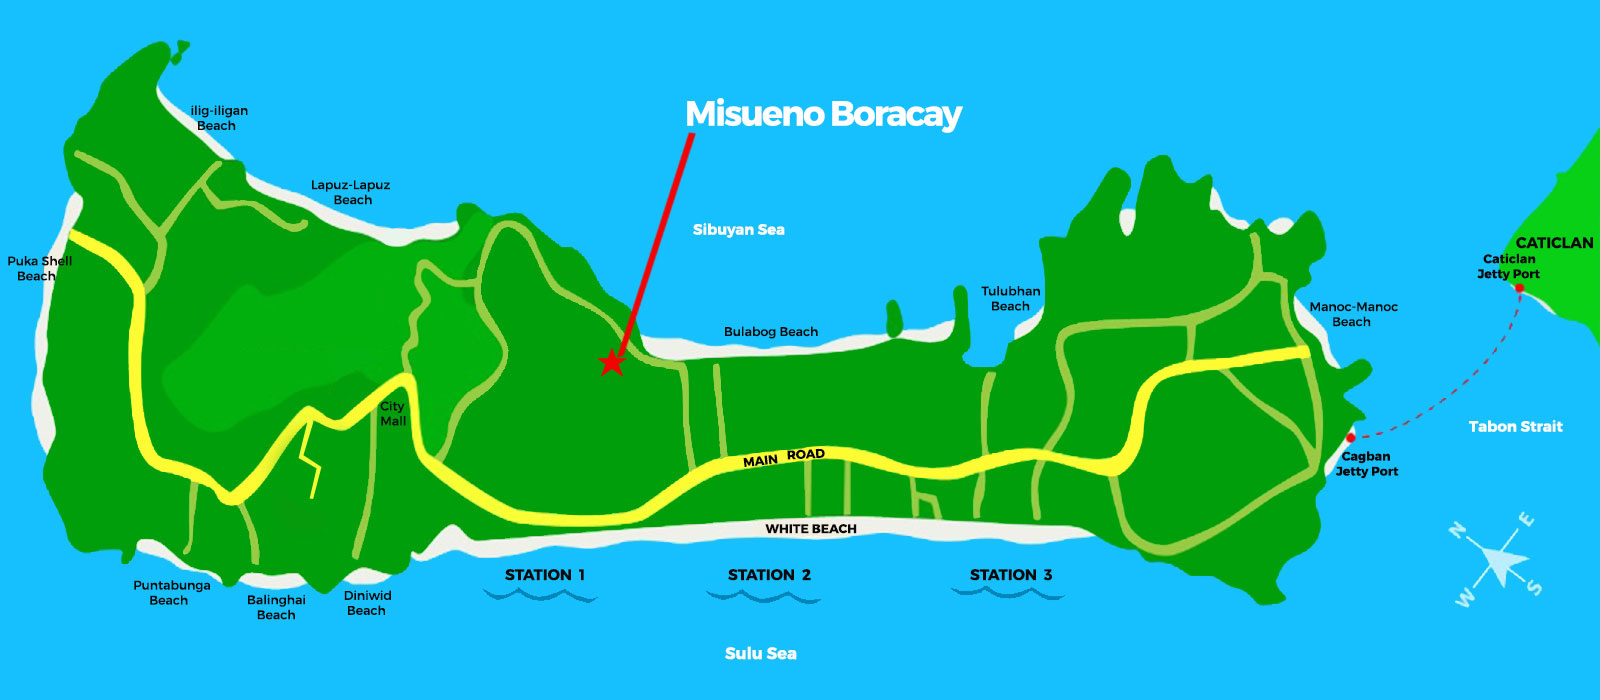 Misueno Boracay - Location Map